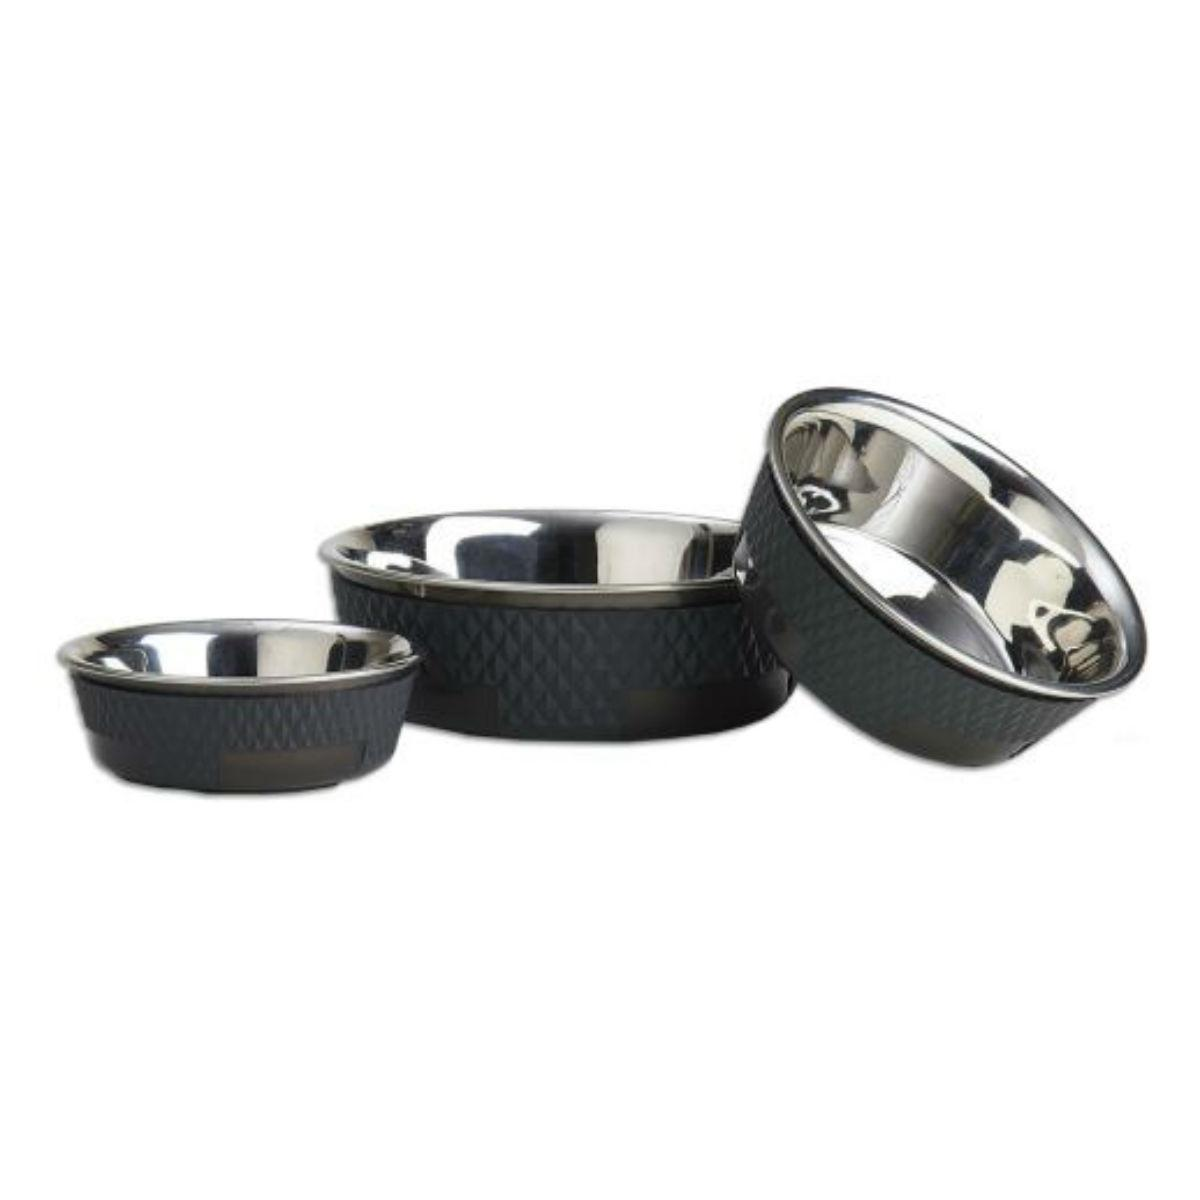 Kona Stainless Steel Dog Bowl - Charcoal